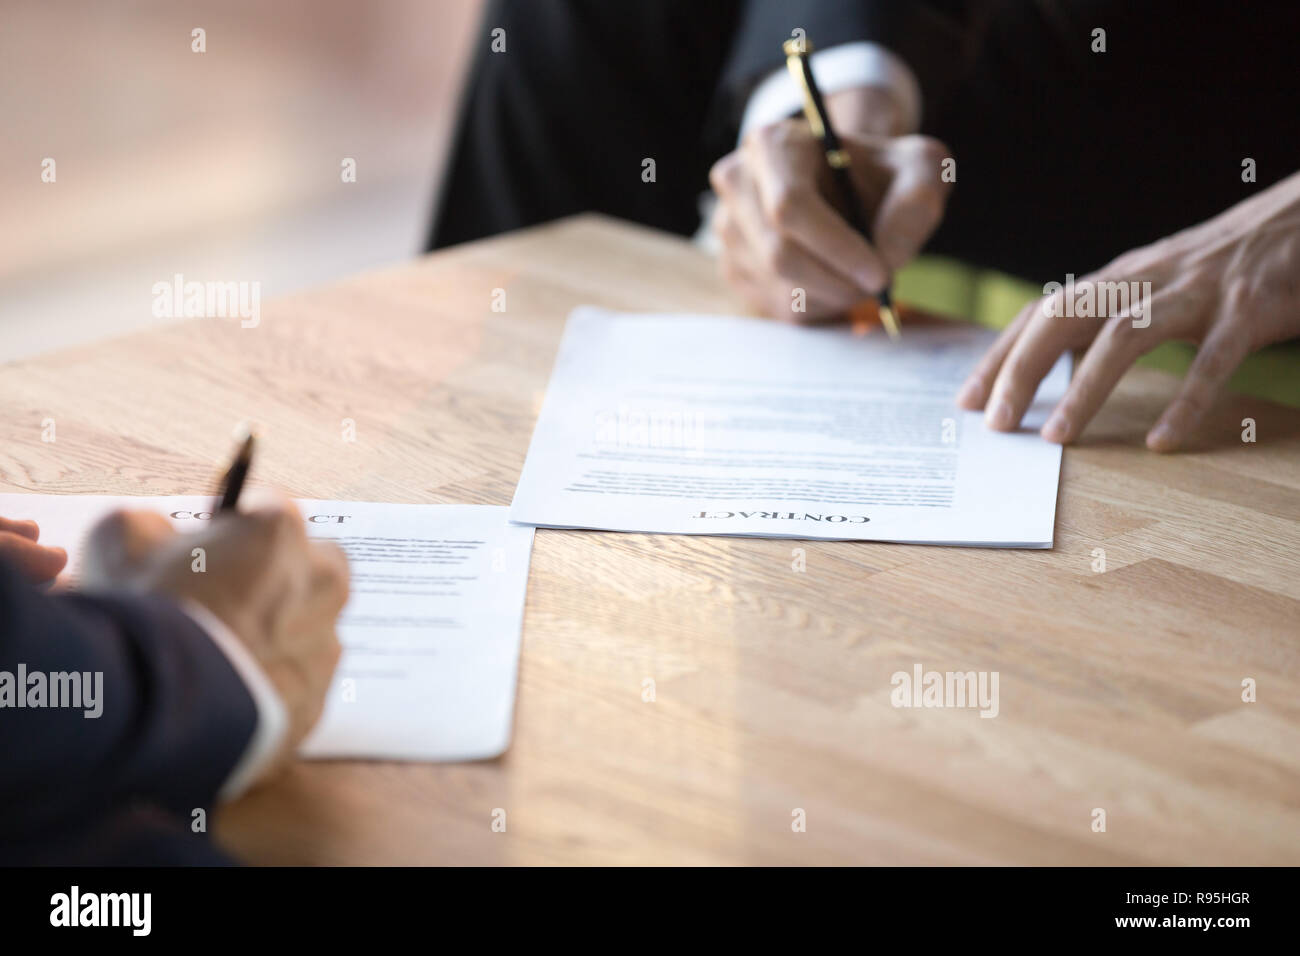 Close up businessmen hands holds pens signing contract  - Stock Image